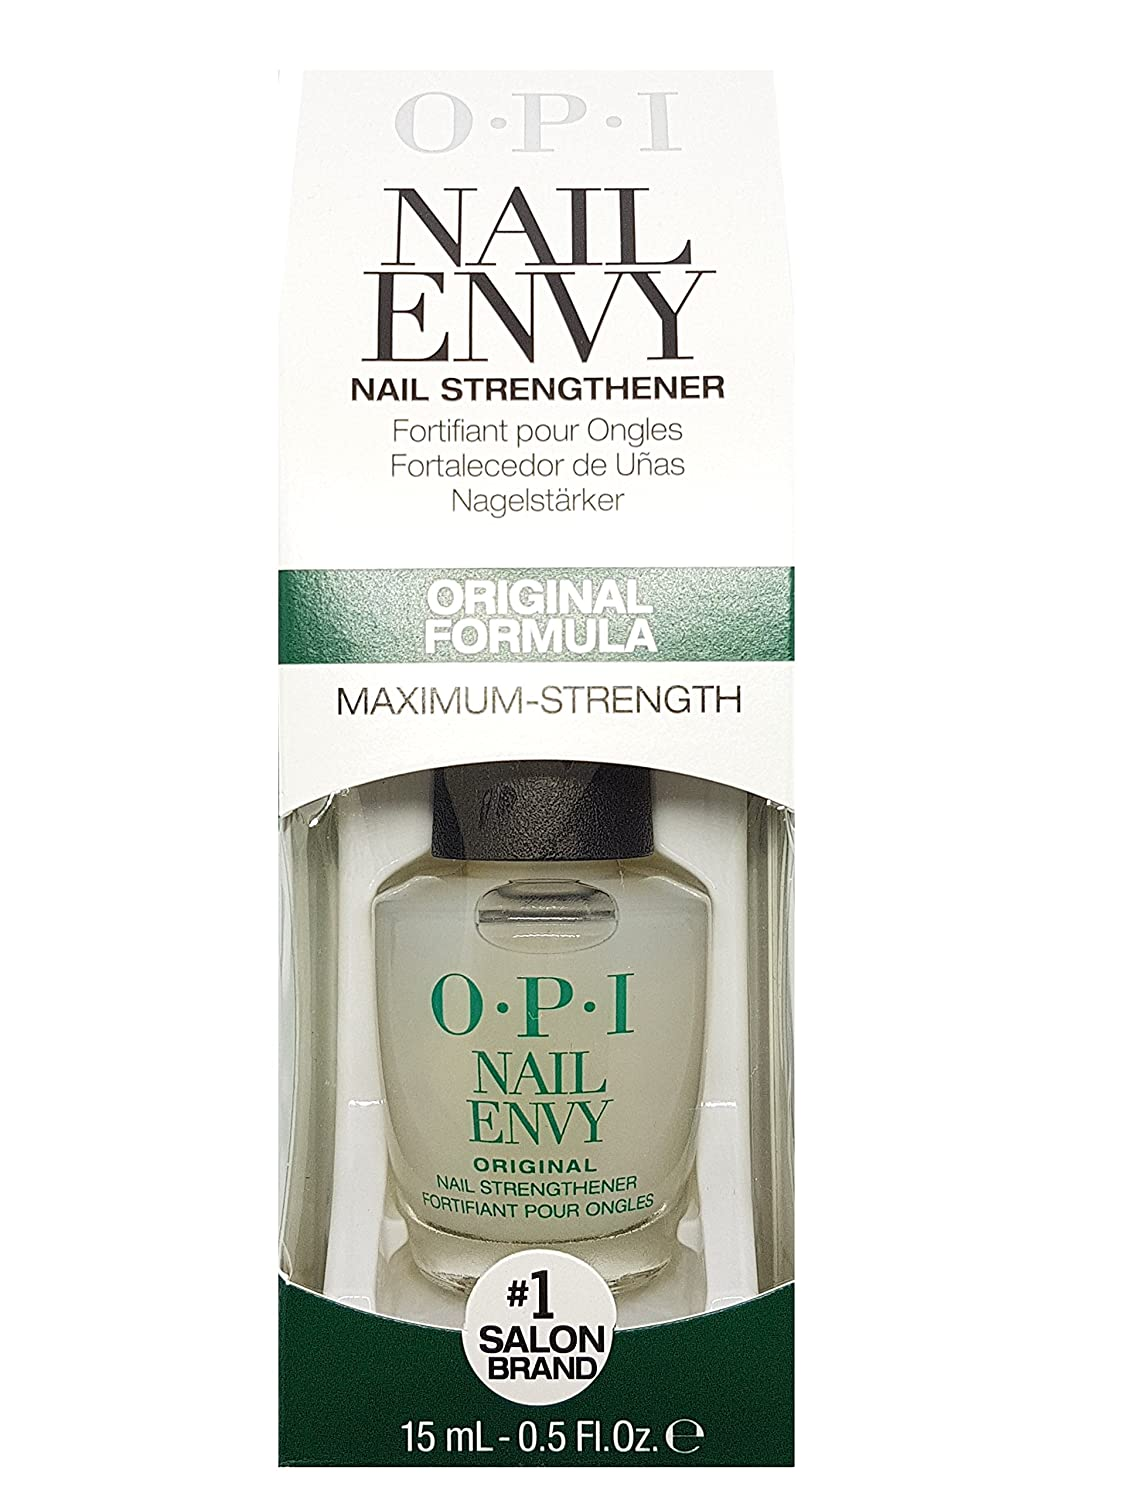 OPI Nail Envy Original, 0.5 Ounce by OPI: Amazon.co.uk: Beauty